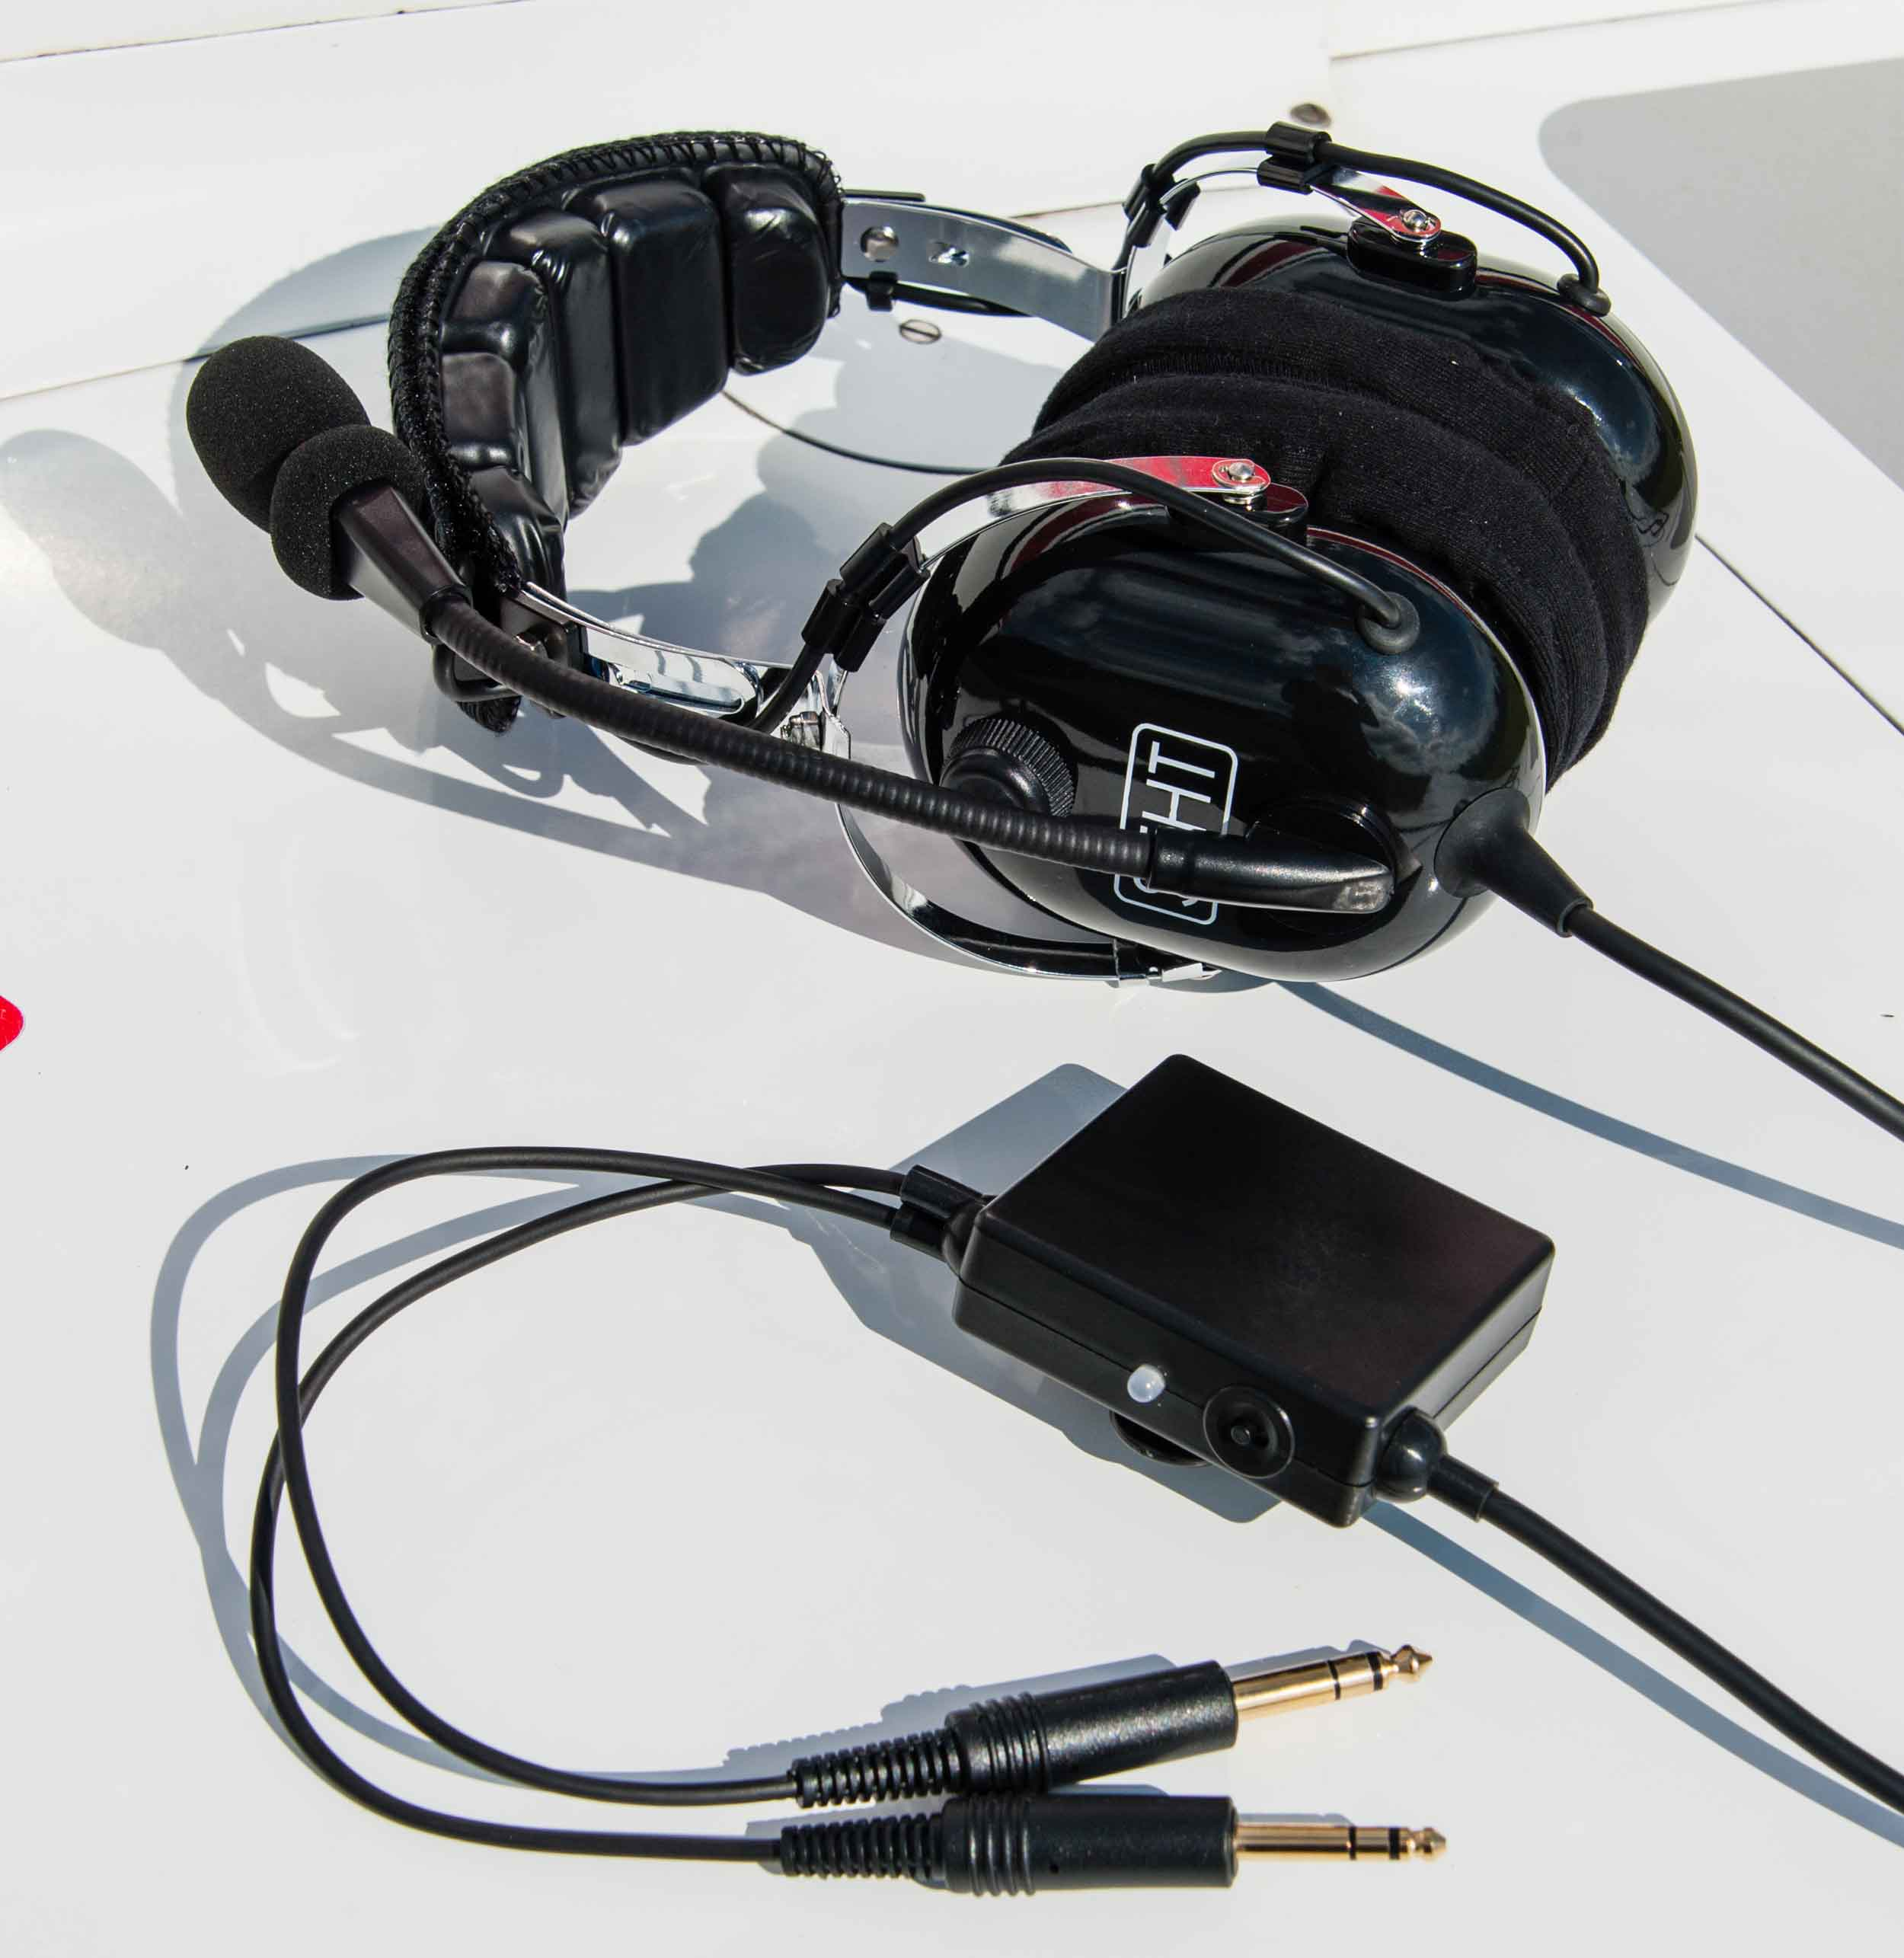 SEHT ANR headset review